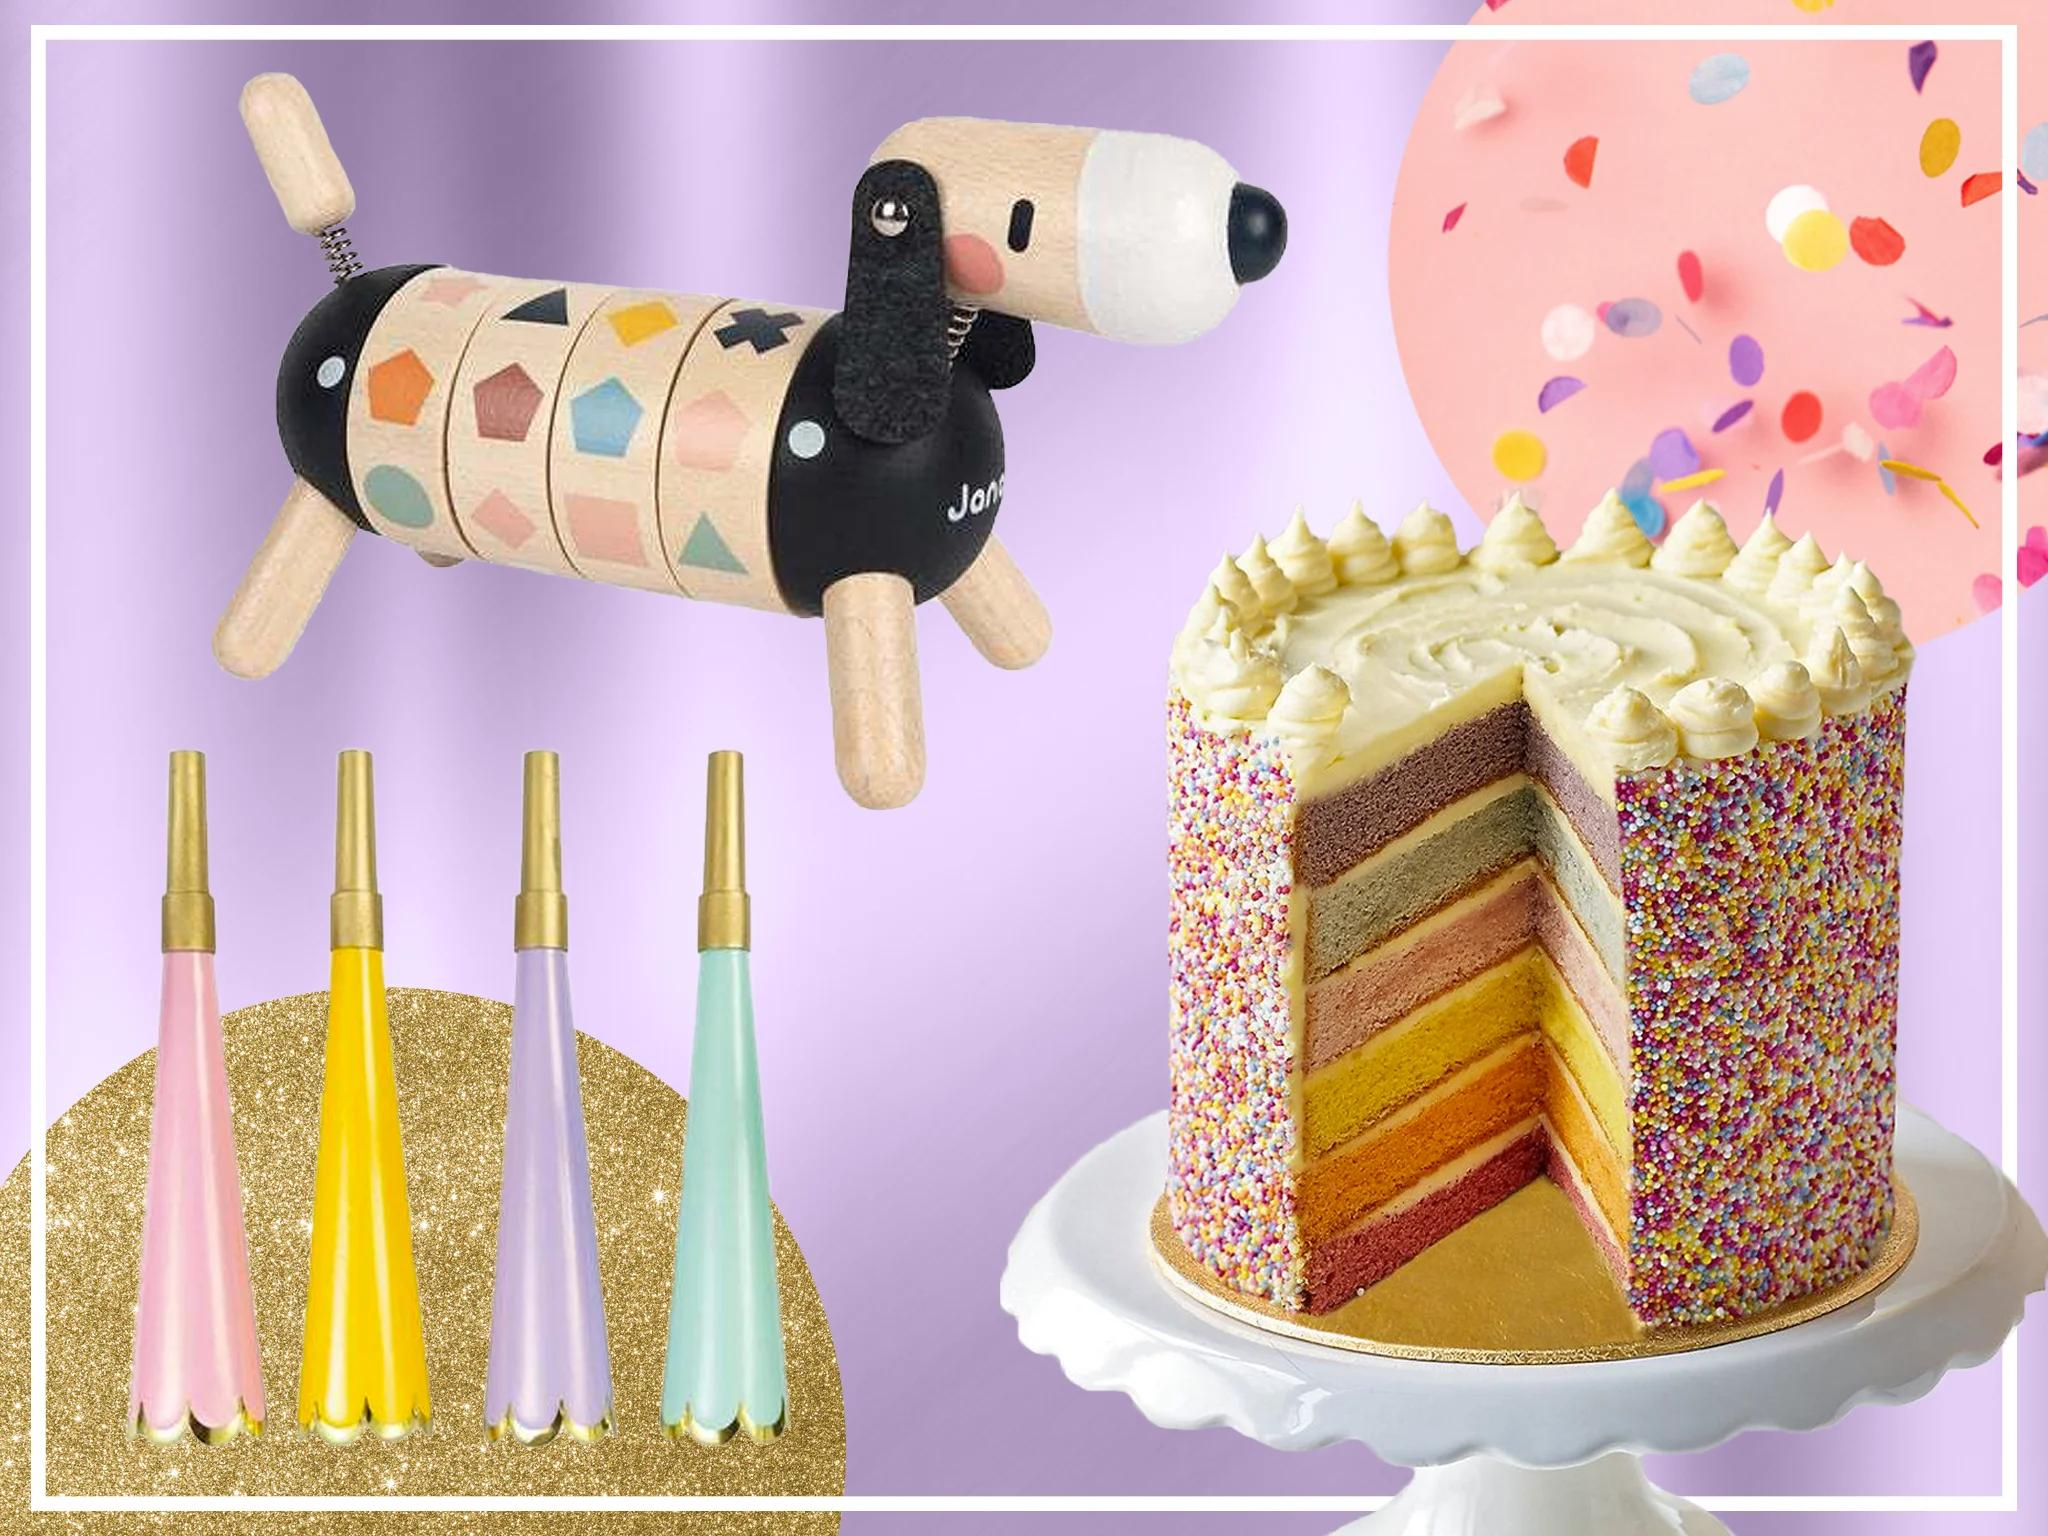 Lockdown Birthday Ideas For Kids Cakes Gifts And Balloons The Independent